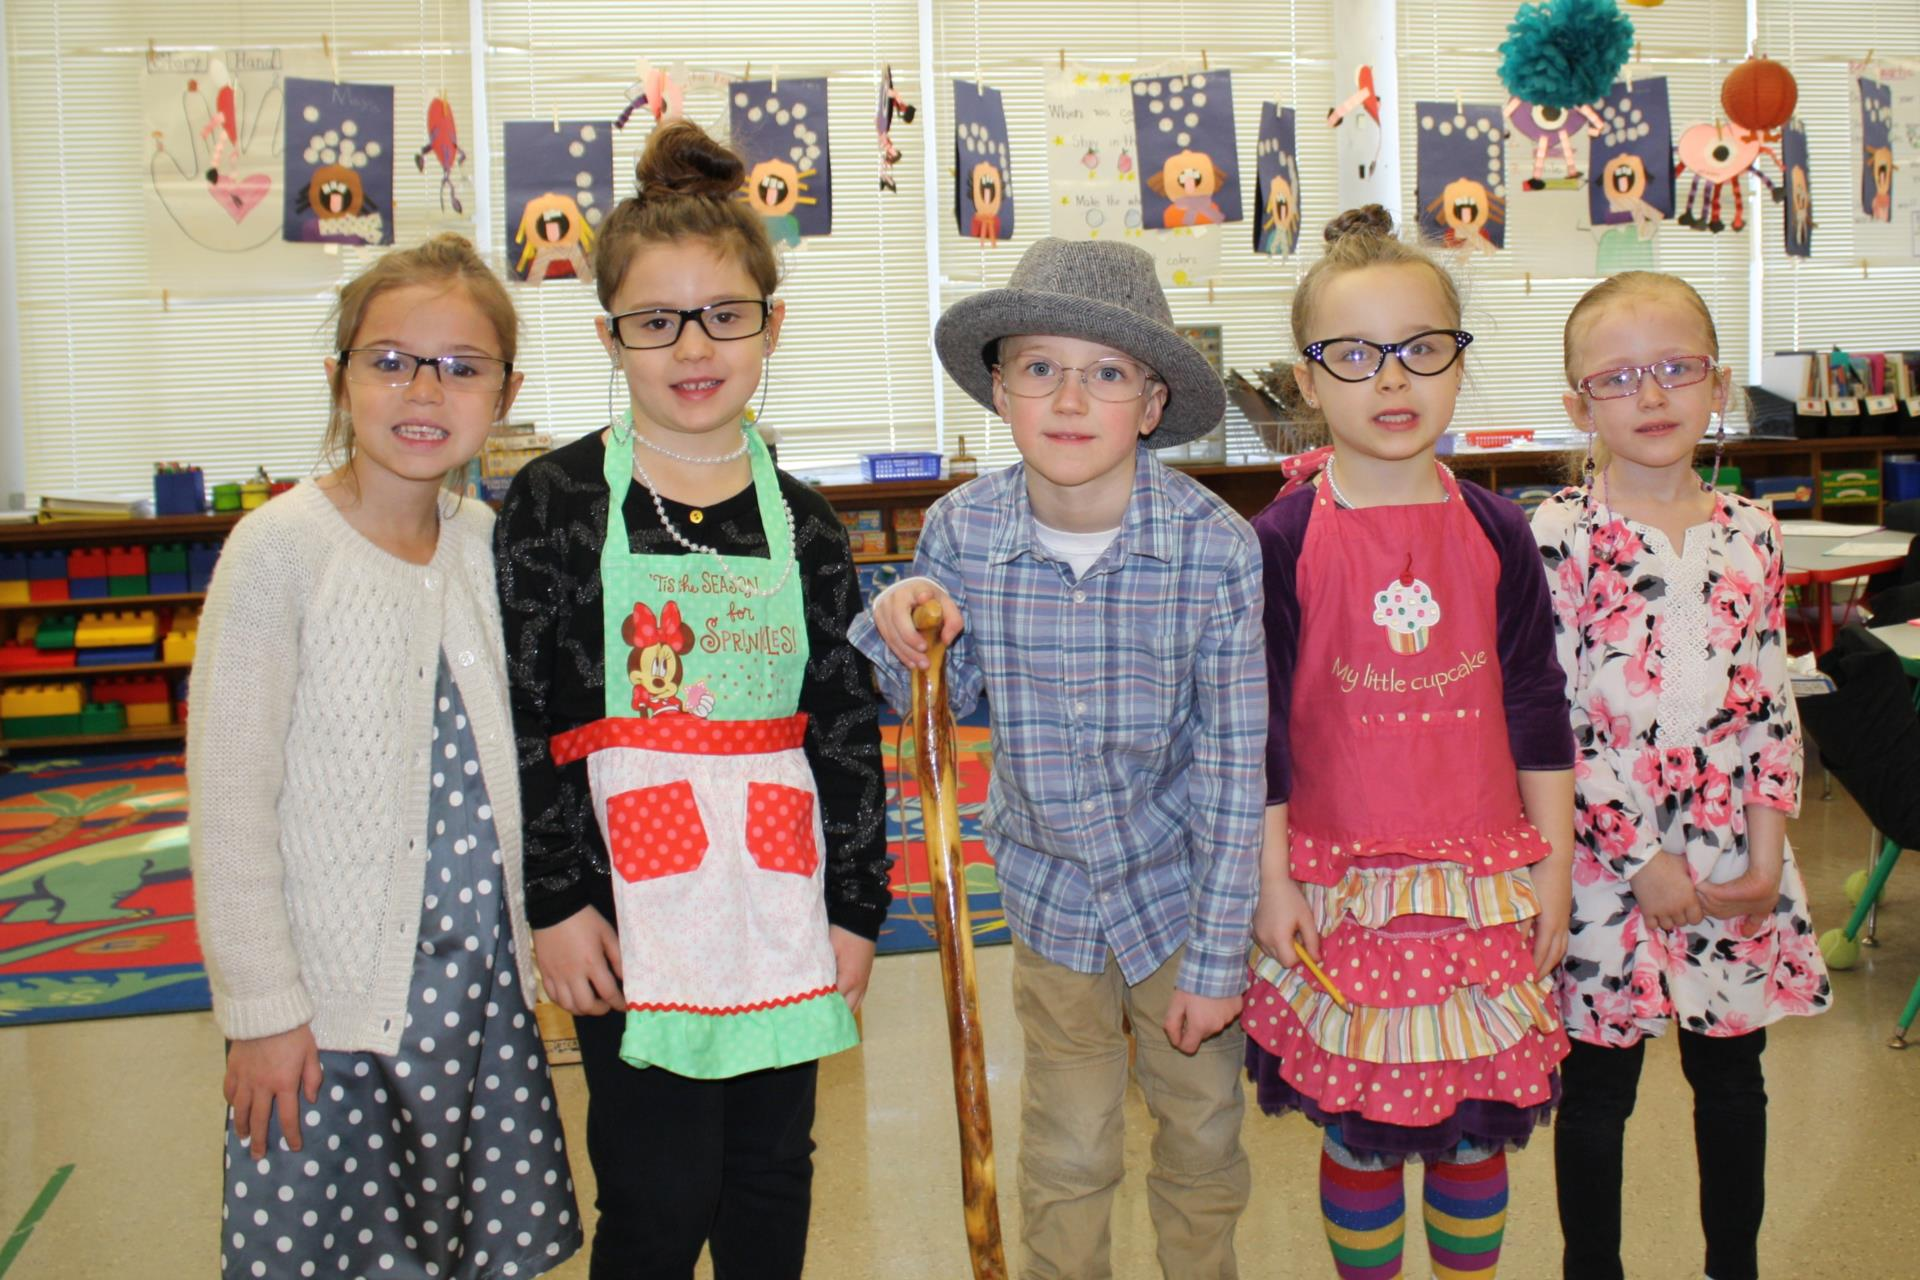 100th Day of School at Chippewa